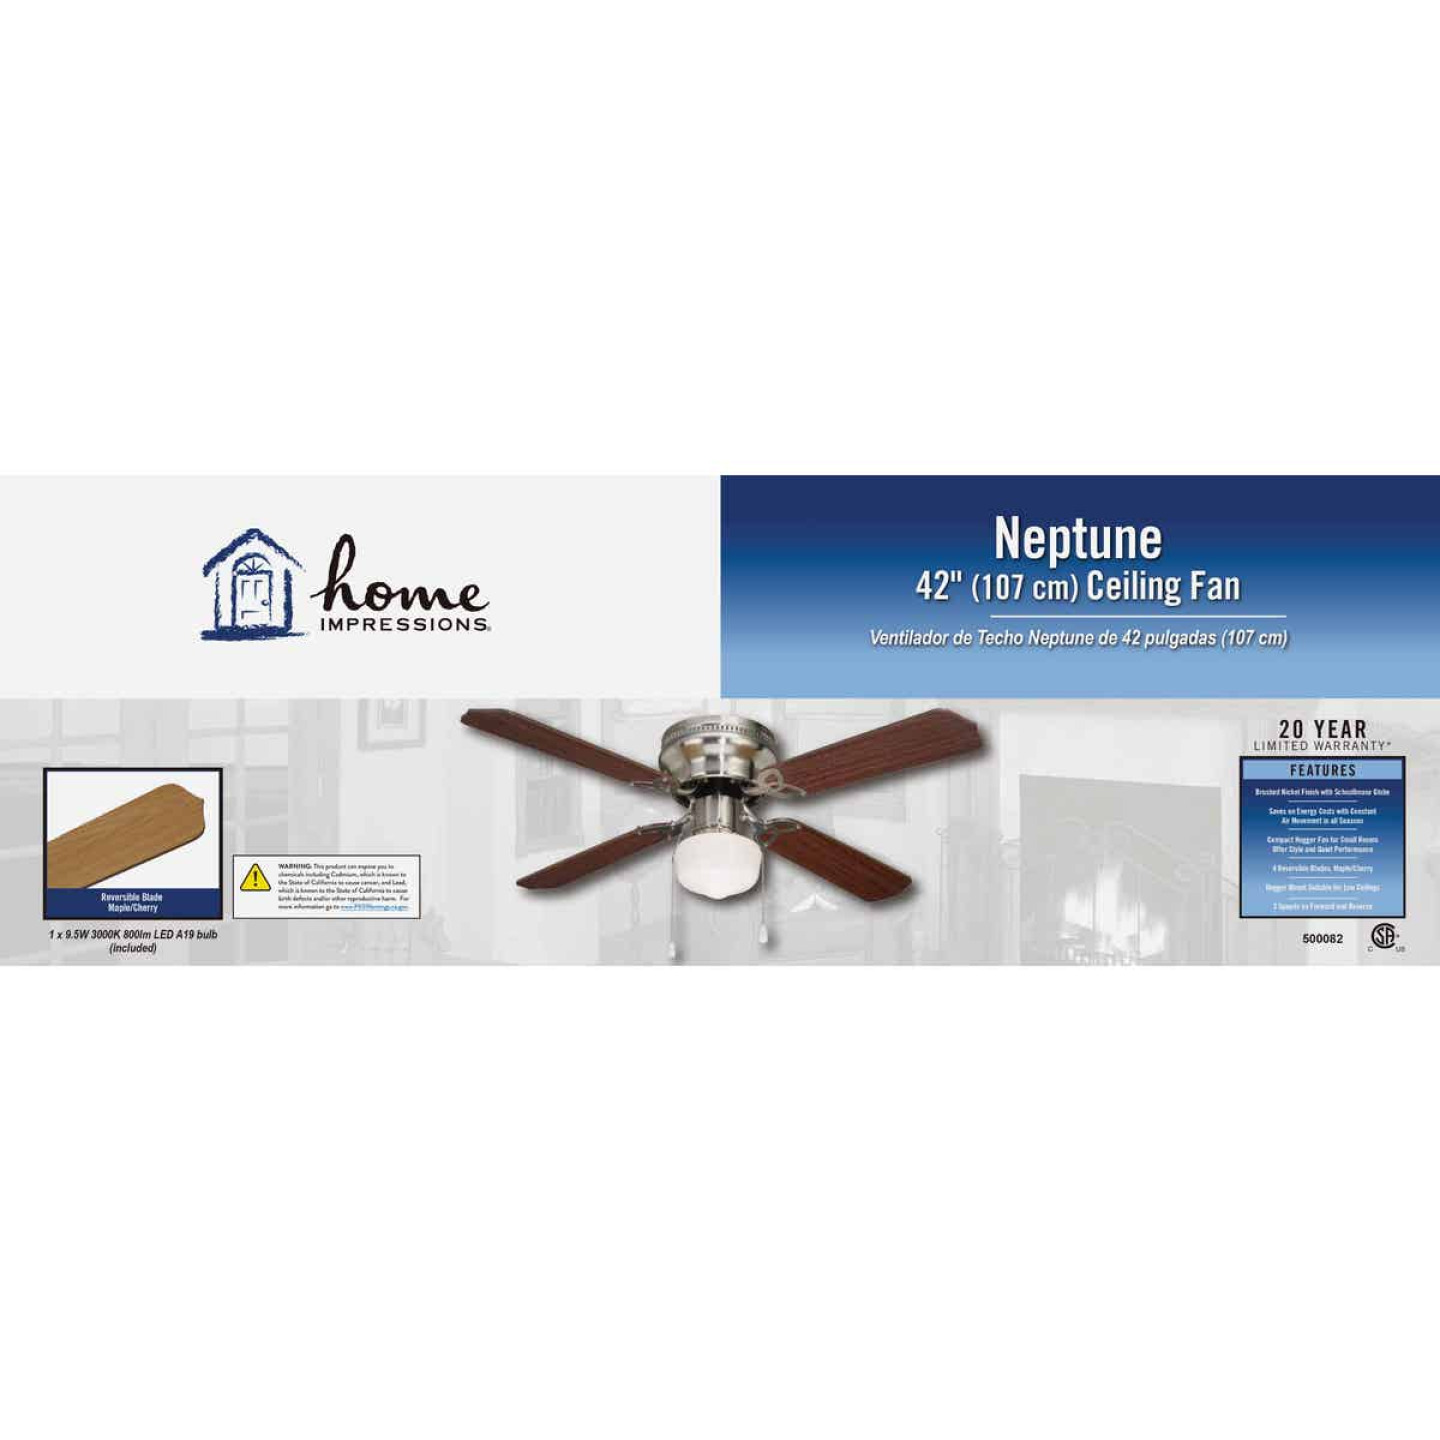 Home Impressions Neptune 42 In. Brushed Nickel Ceiling Fan with Light Kit Image 2